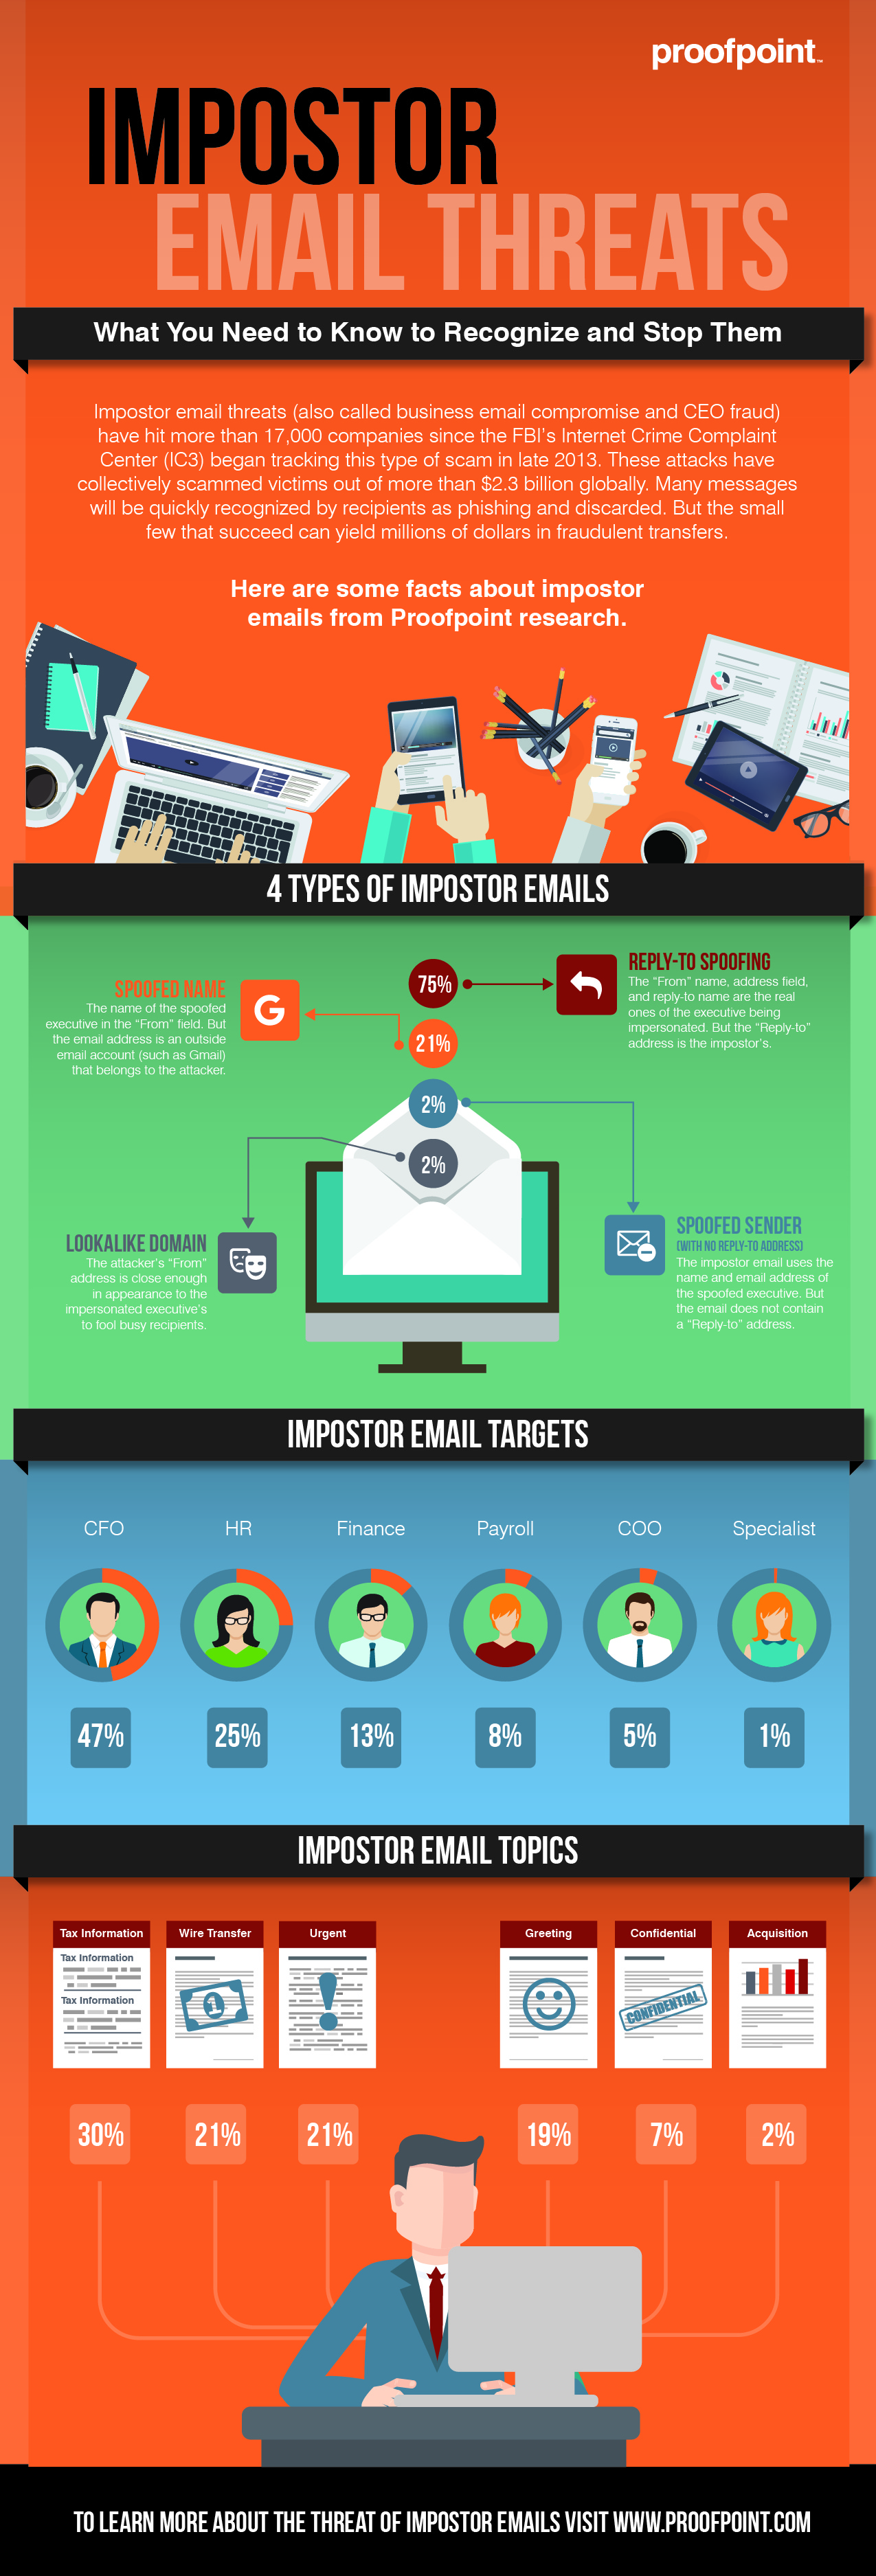 email-phishing-scam-infographic-proofpoint